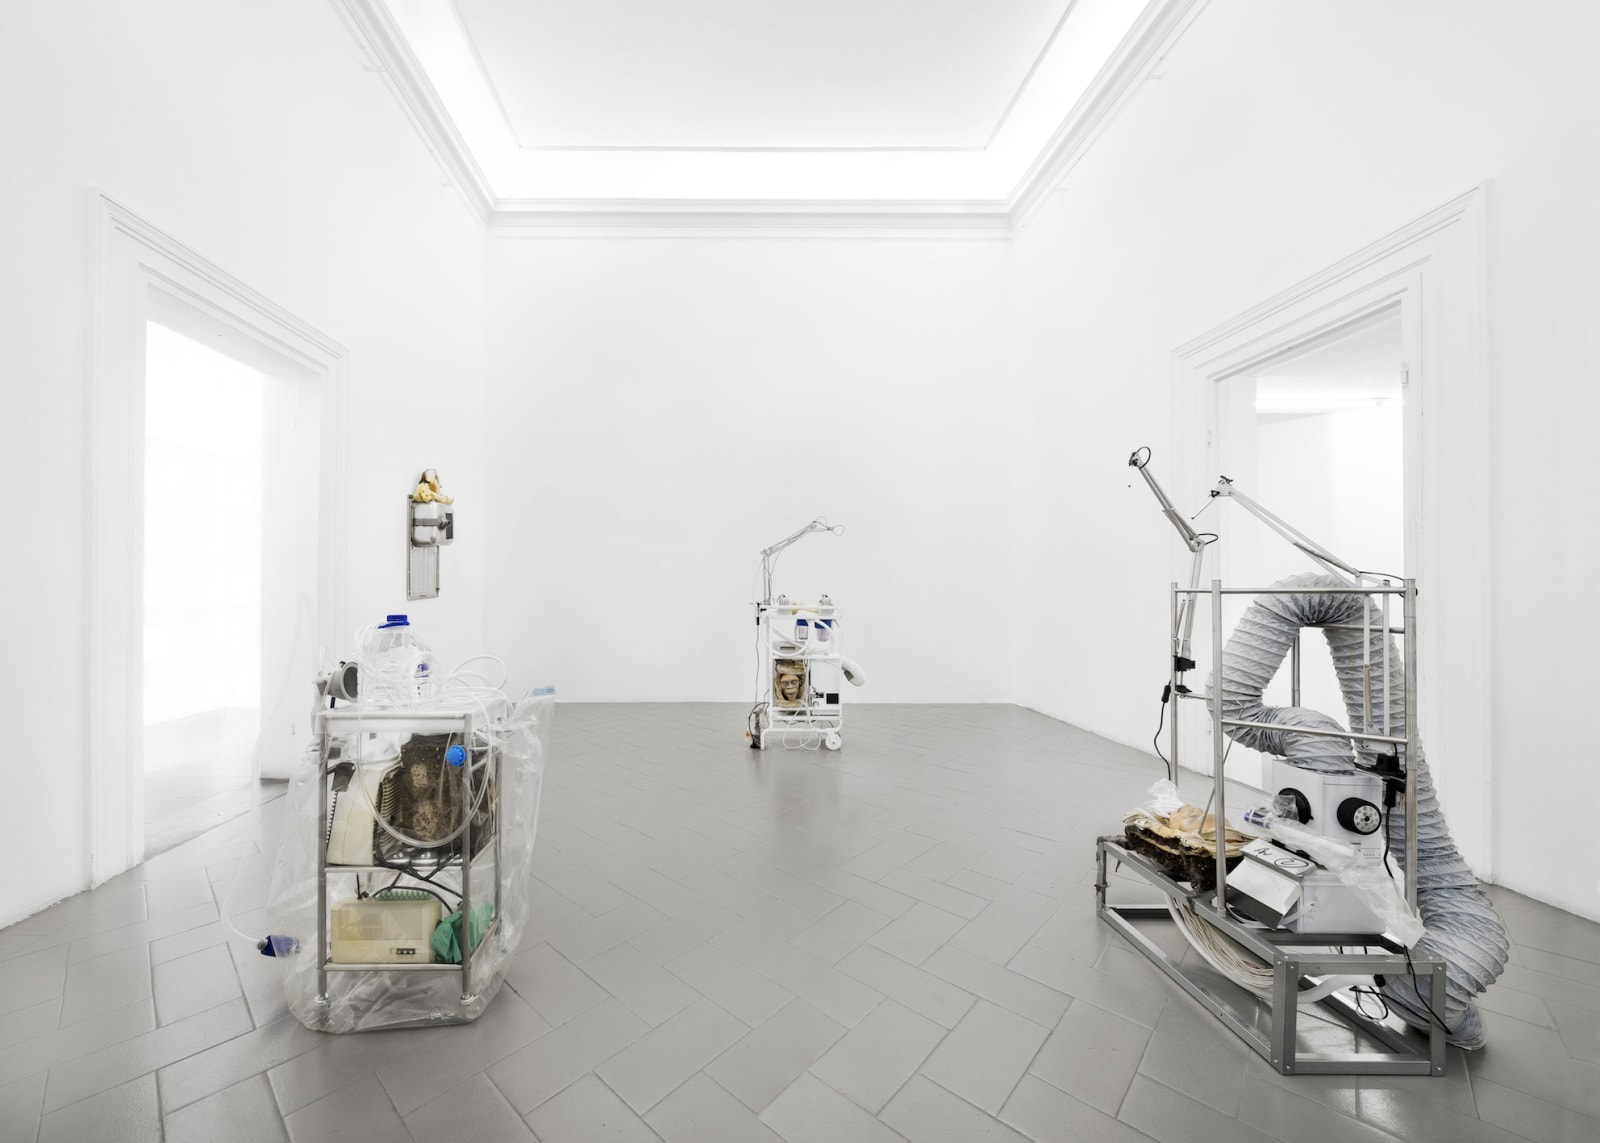 PRJCT: The Missing Link. On every point of a sphere Installation view